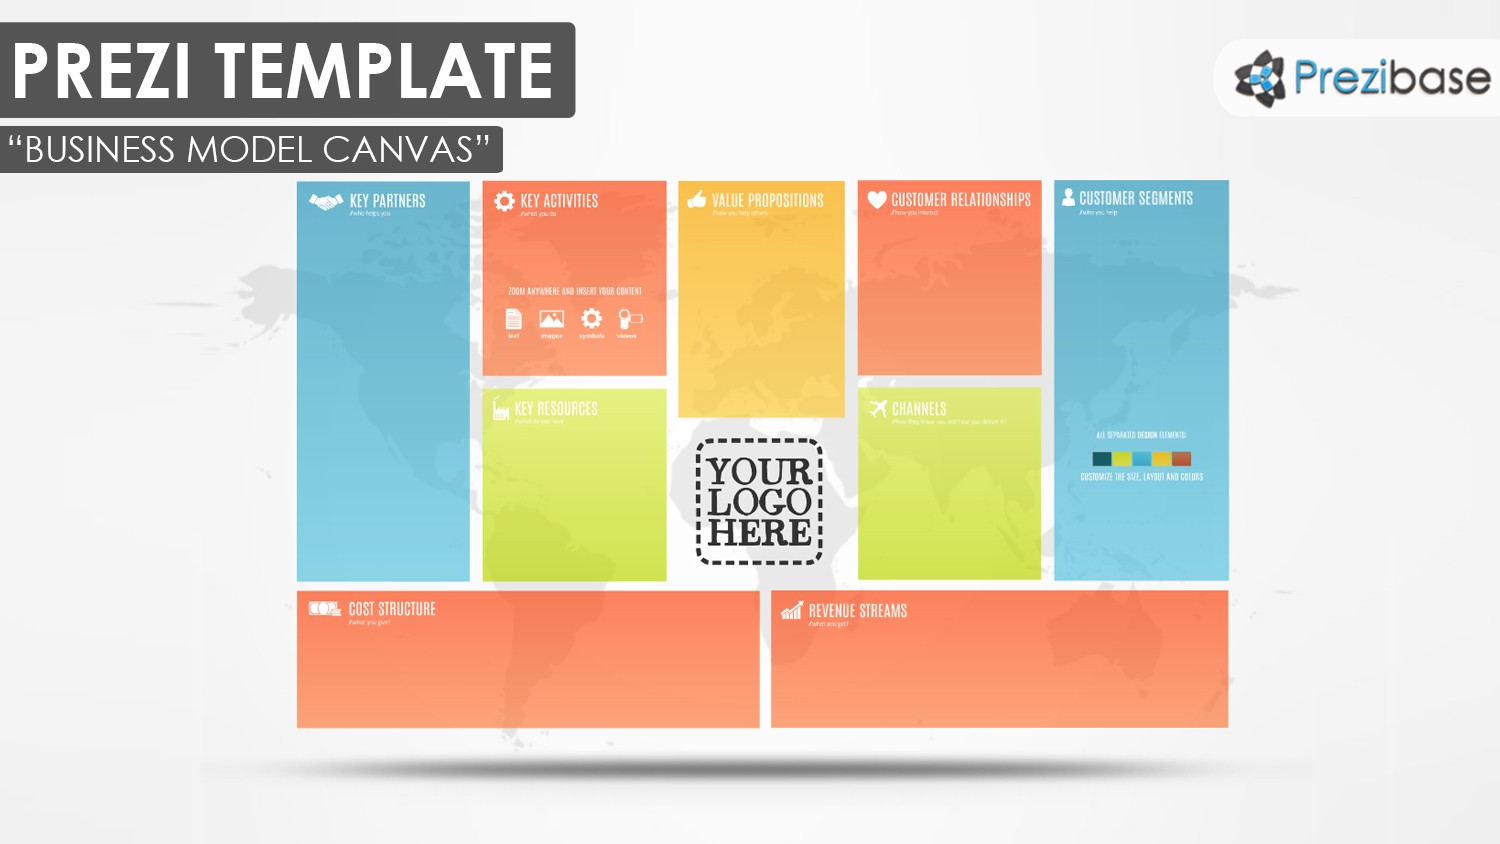 Business model canvas prezi template prezibase business model canvas colorful pitch world map prezi template wajeb Image collections